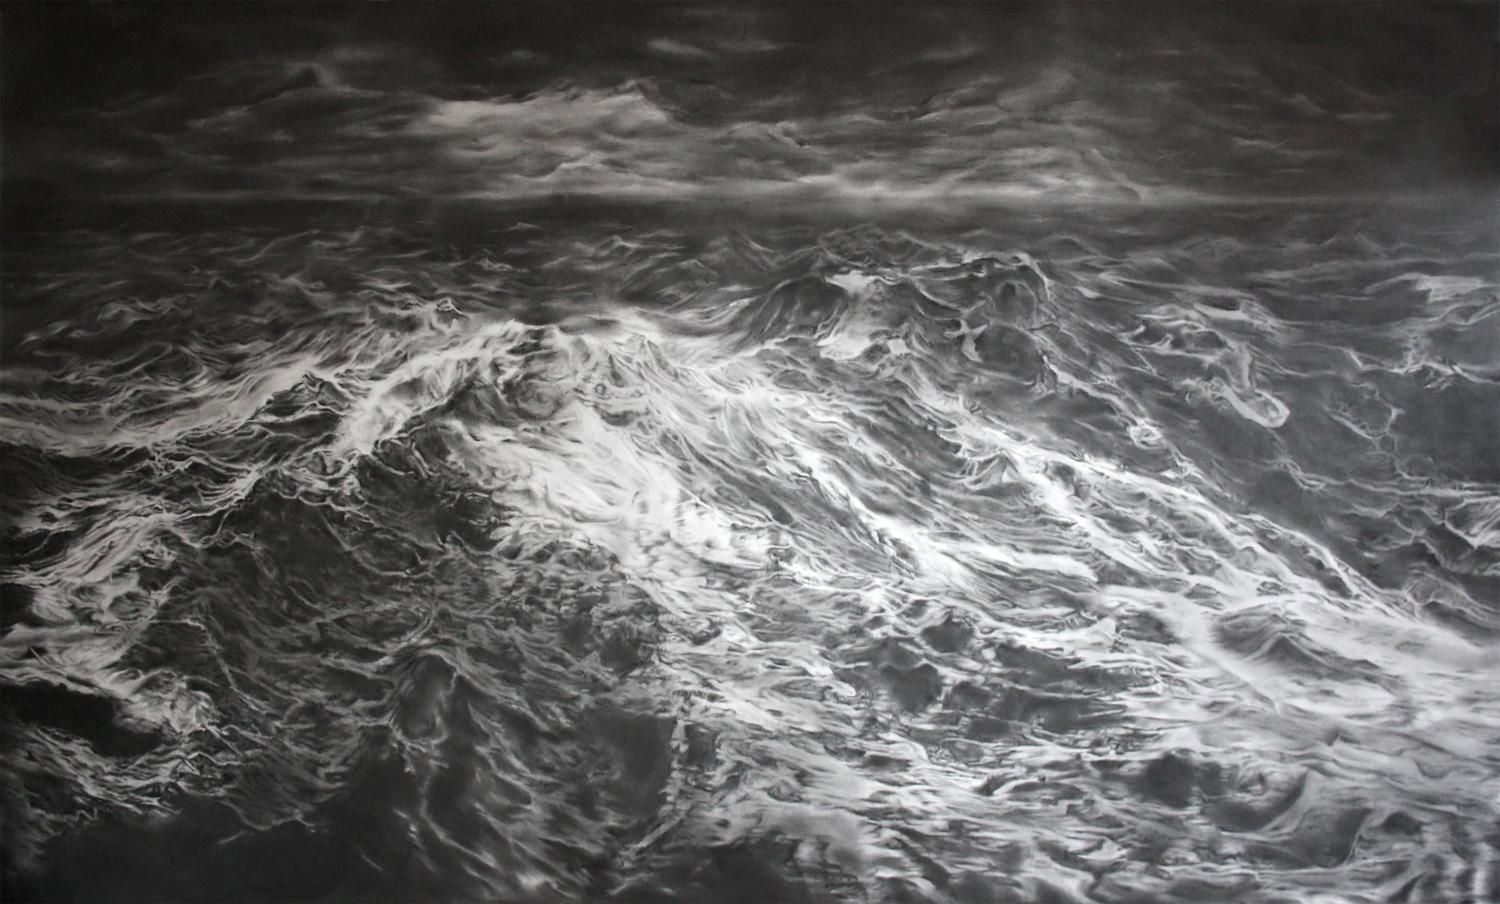 Simon Schubert, untitled (the Tempest), Graphite on Paper, 150cm x 250cm, 2015 - 2020